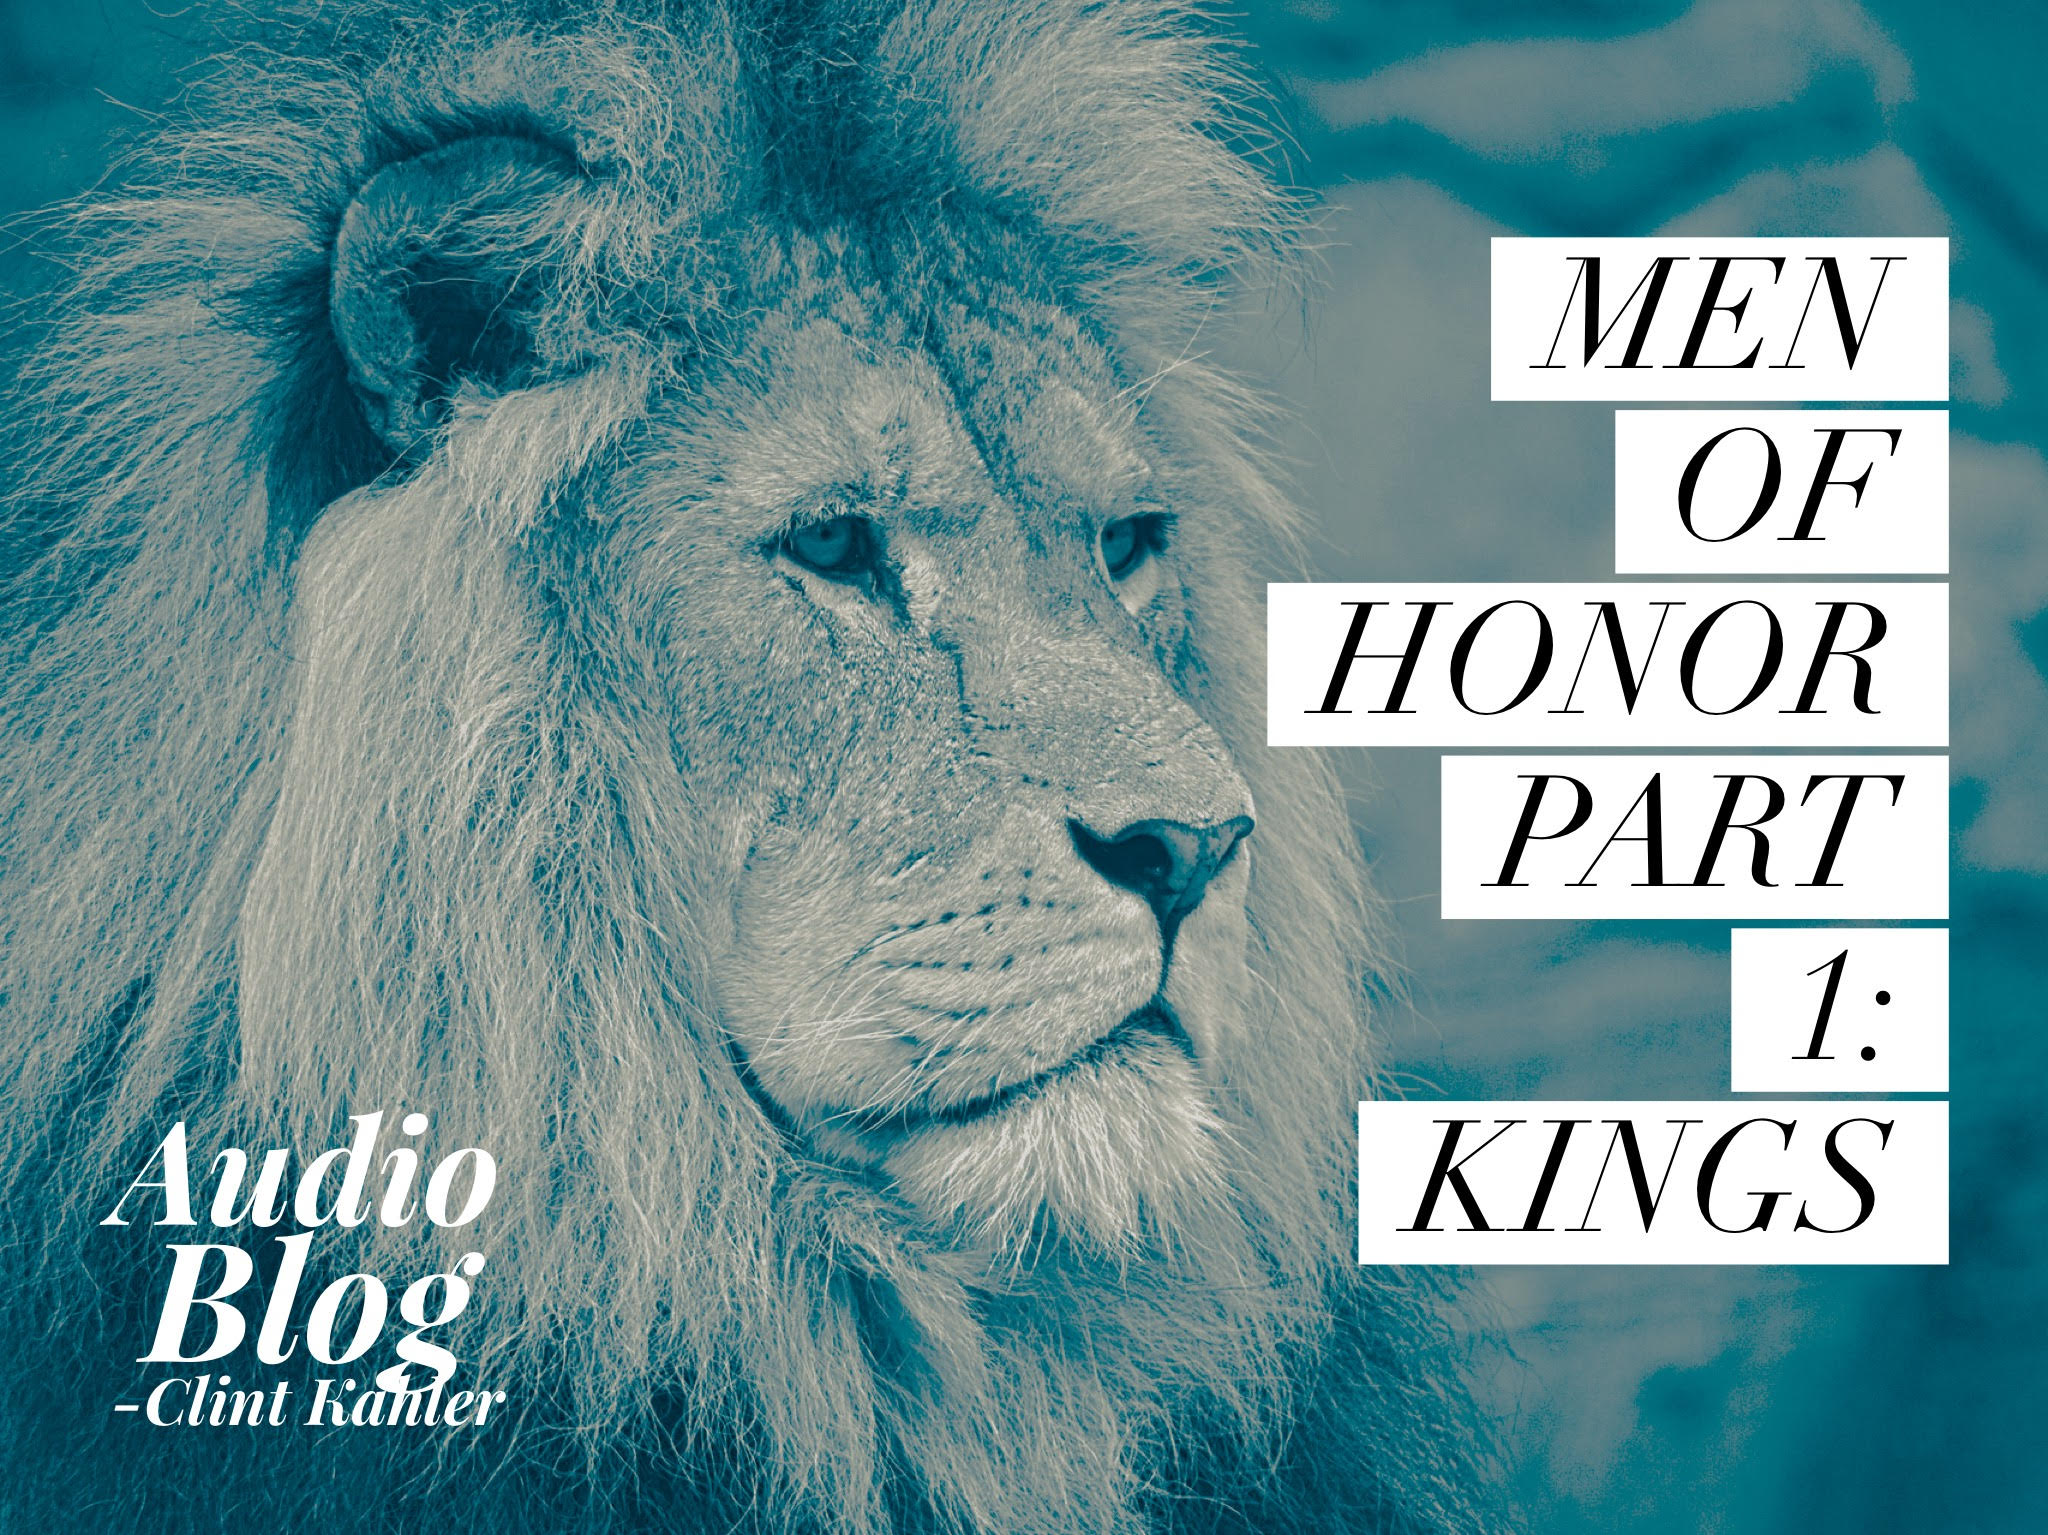 Men of Honor Part 1: KINGS | Audio Blog by Clint Kahler